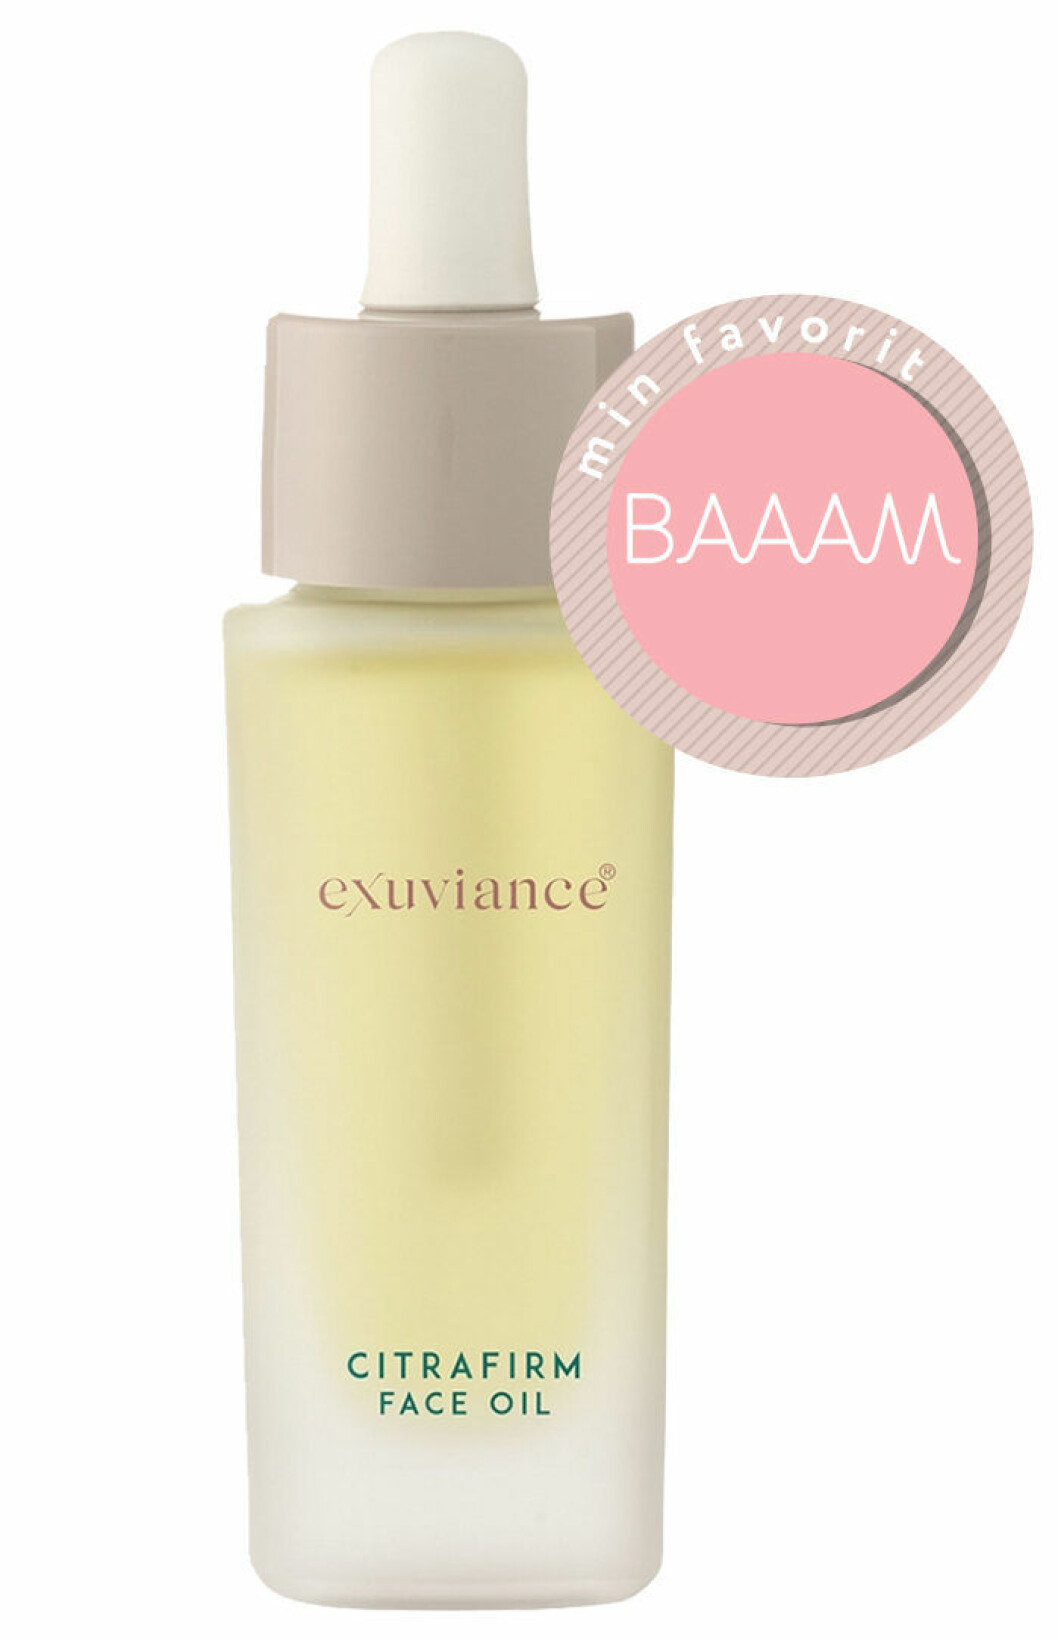 Exuviance Citrafirm Face Oil test